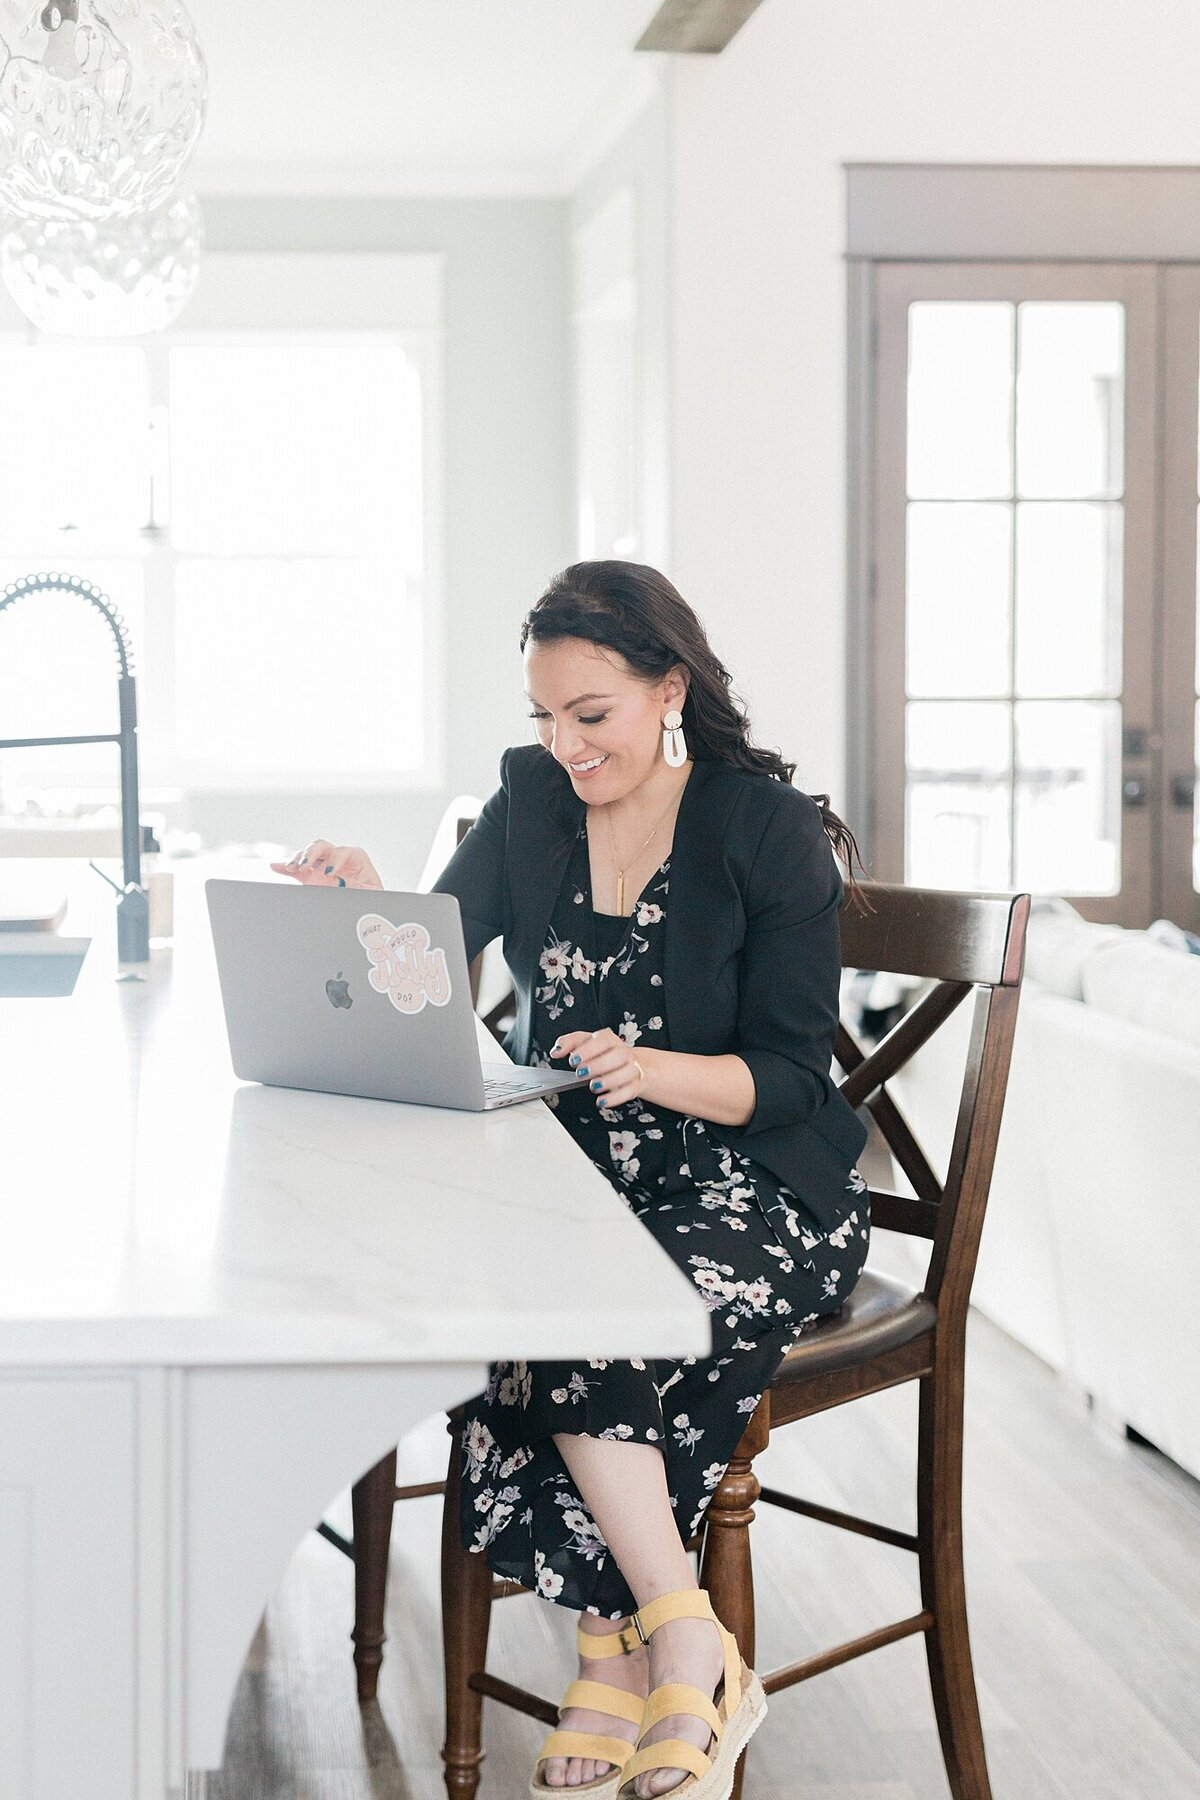 Dolly of. Dolly DeLong Photography is sitting on a tall kitchen. bar stool and typing on her macbook pro